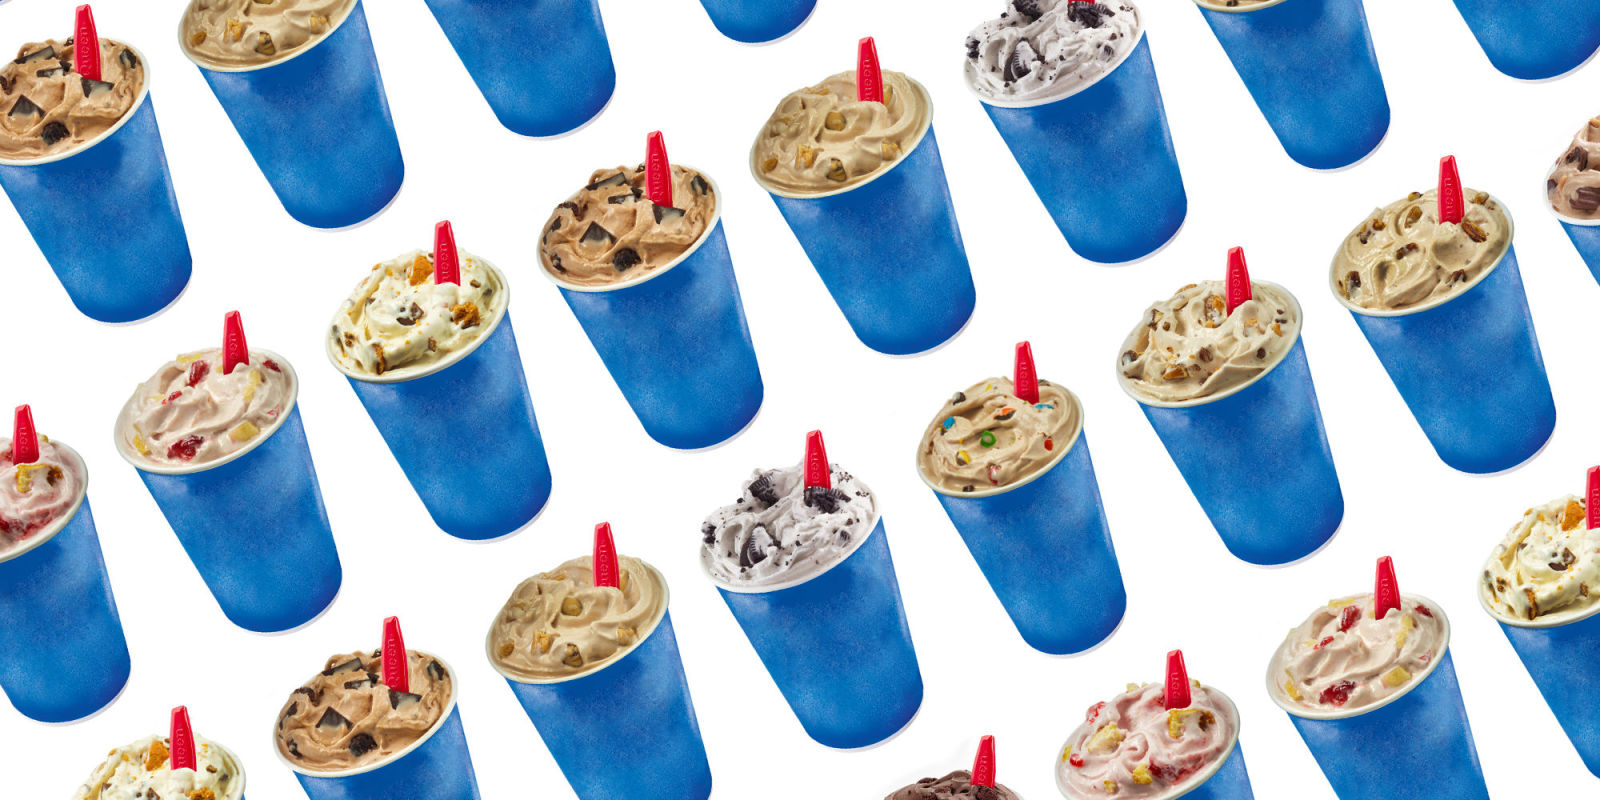 You Re Going To Lose It Over Dairy Queen S Summer Blizzard Lineup